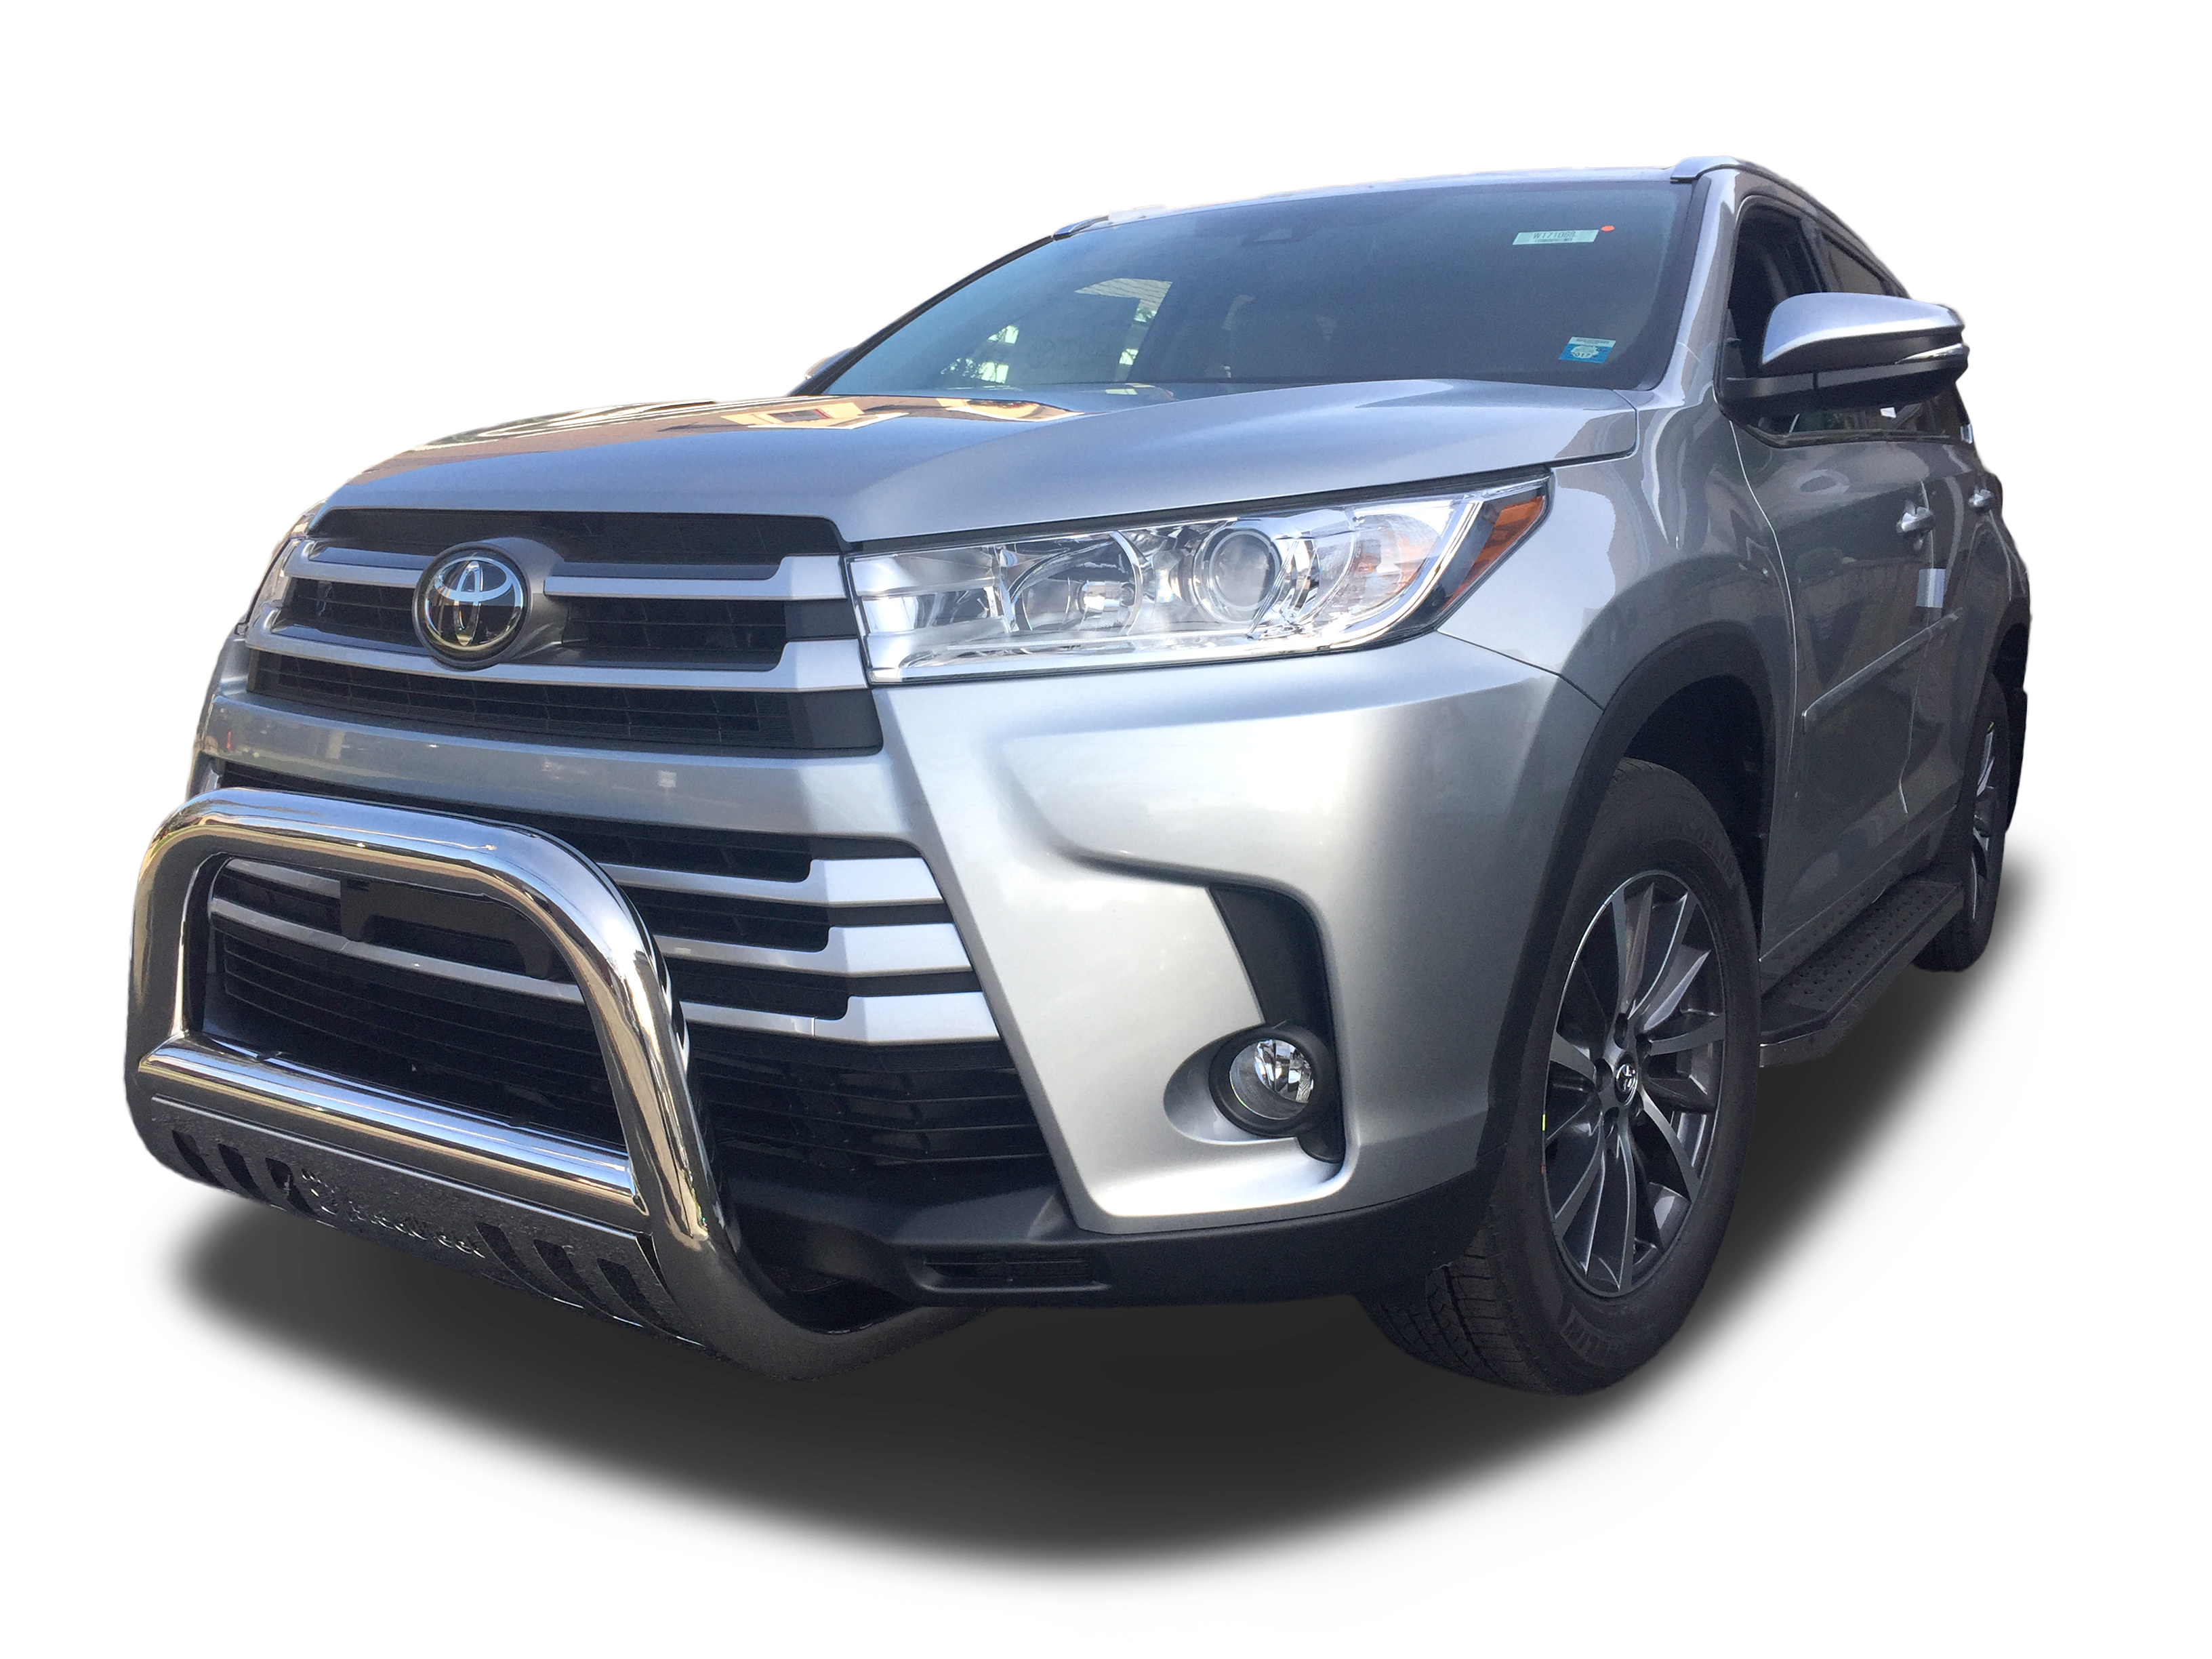 Toyota Highlander accessories restyling